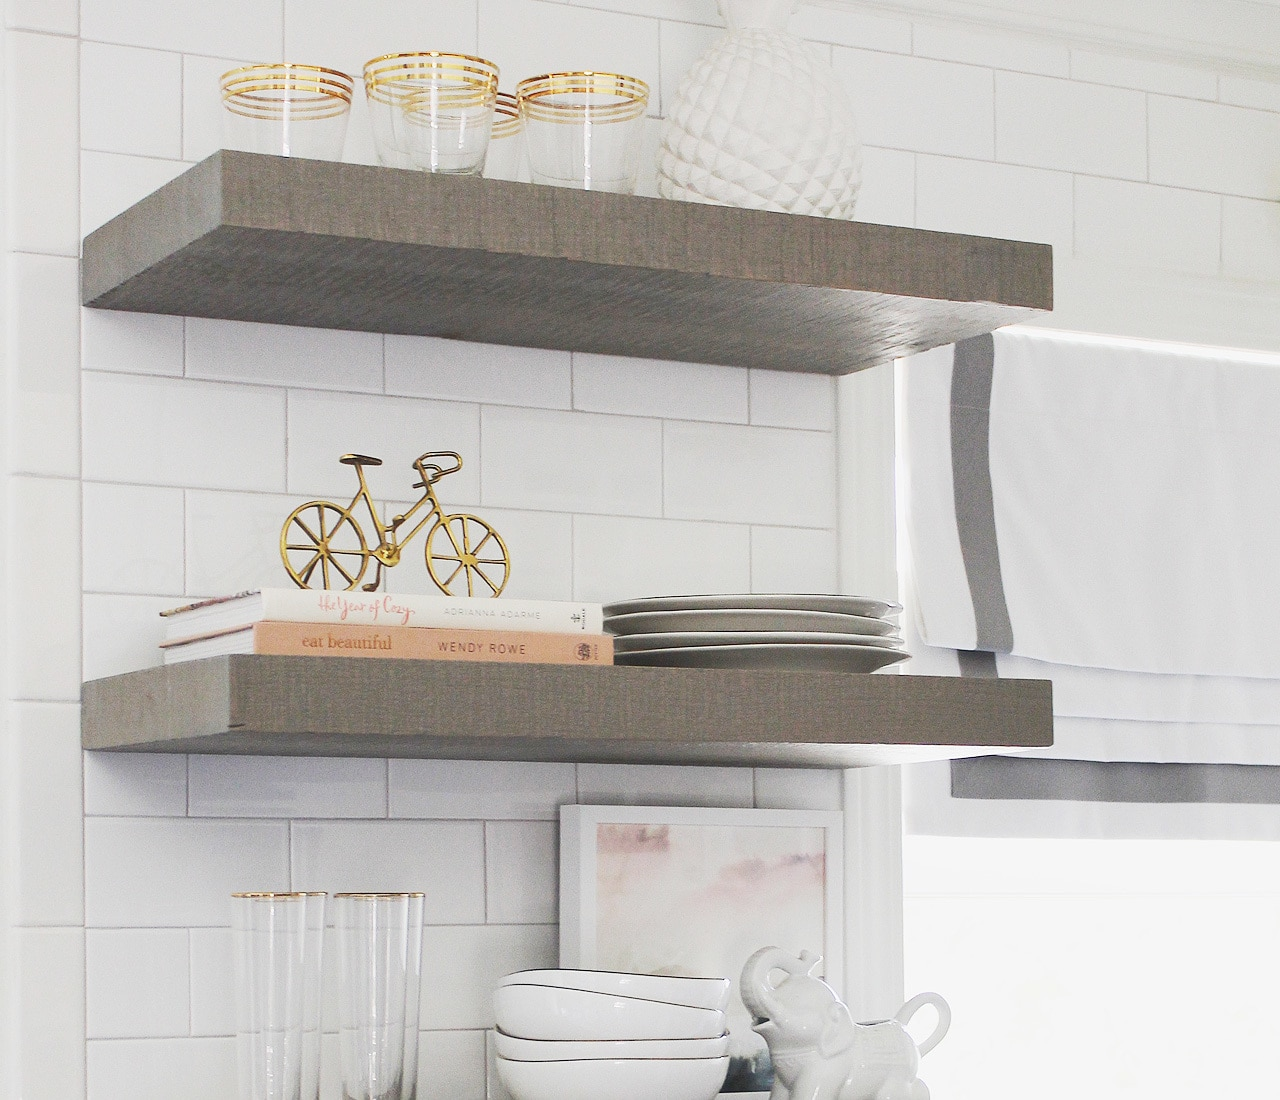 floating shelf bracket fits inch shelves gray kitchen light heavy duty easily install with our steel large mantel black square dish storage solutions homebase white ode furniture